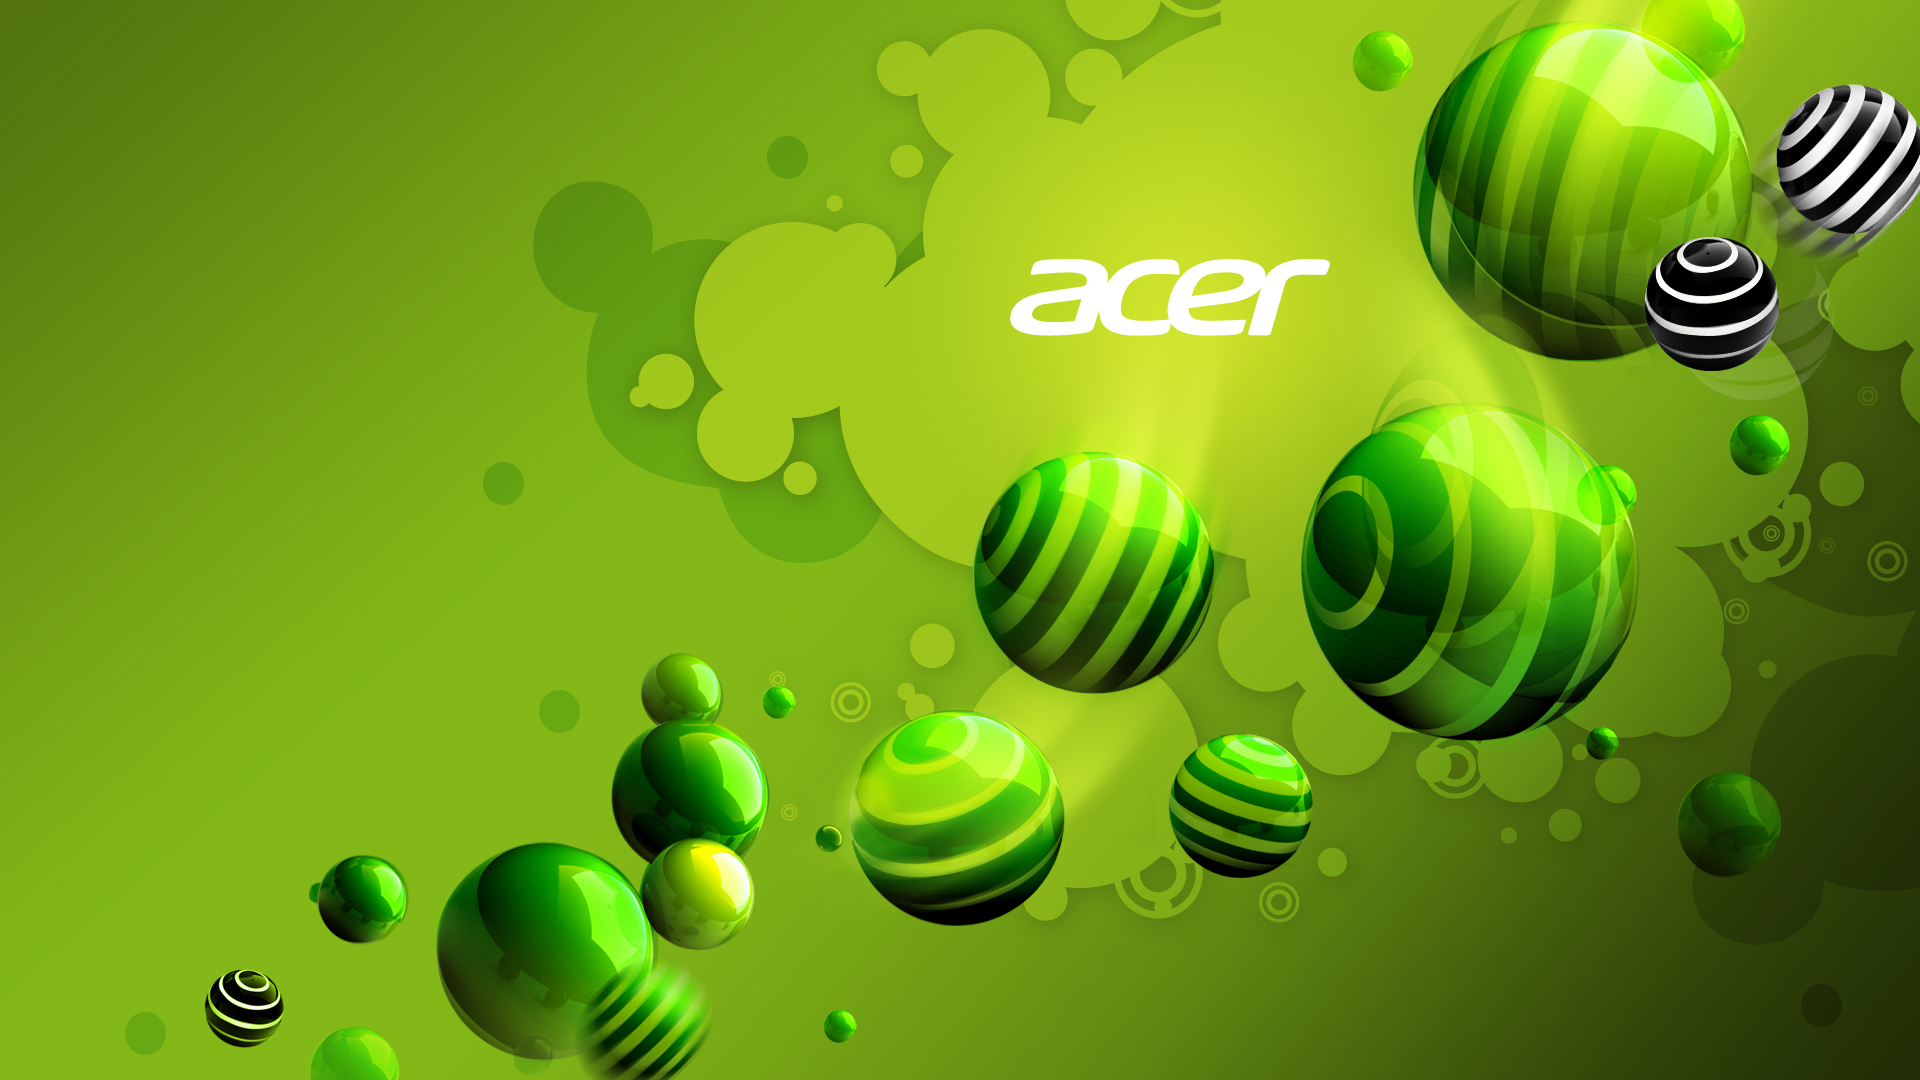 Mac 3d Wallpapers Free Download Acer Wallpaper Hd Pixelstalk Net